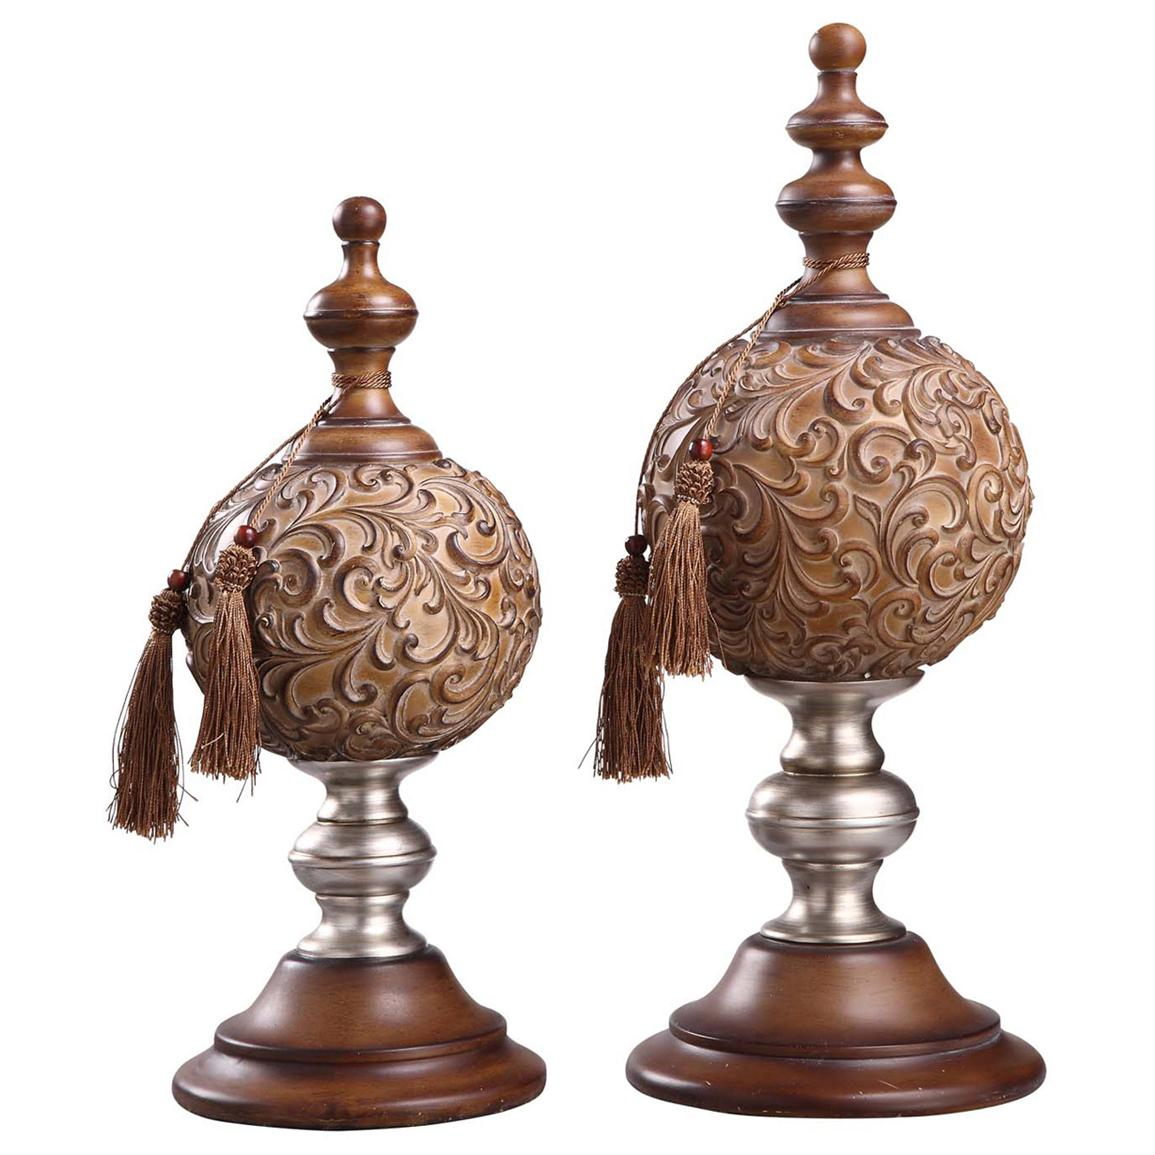 charming decorative orbs with silver and brown stand for table accessories ideas